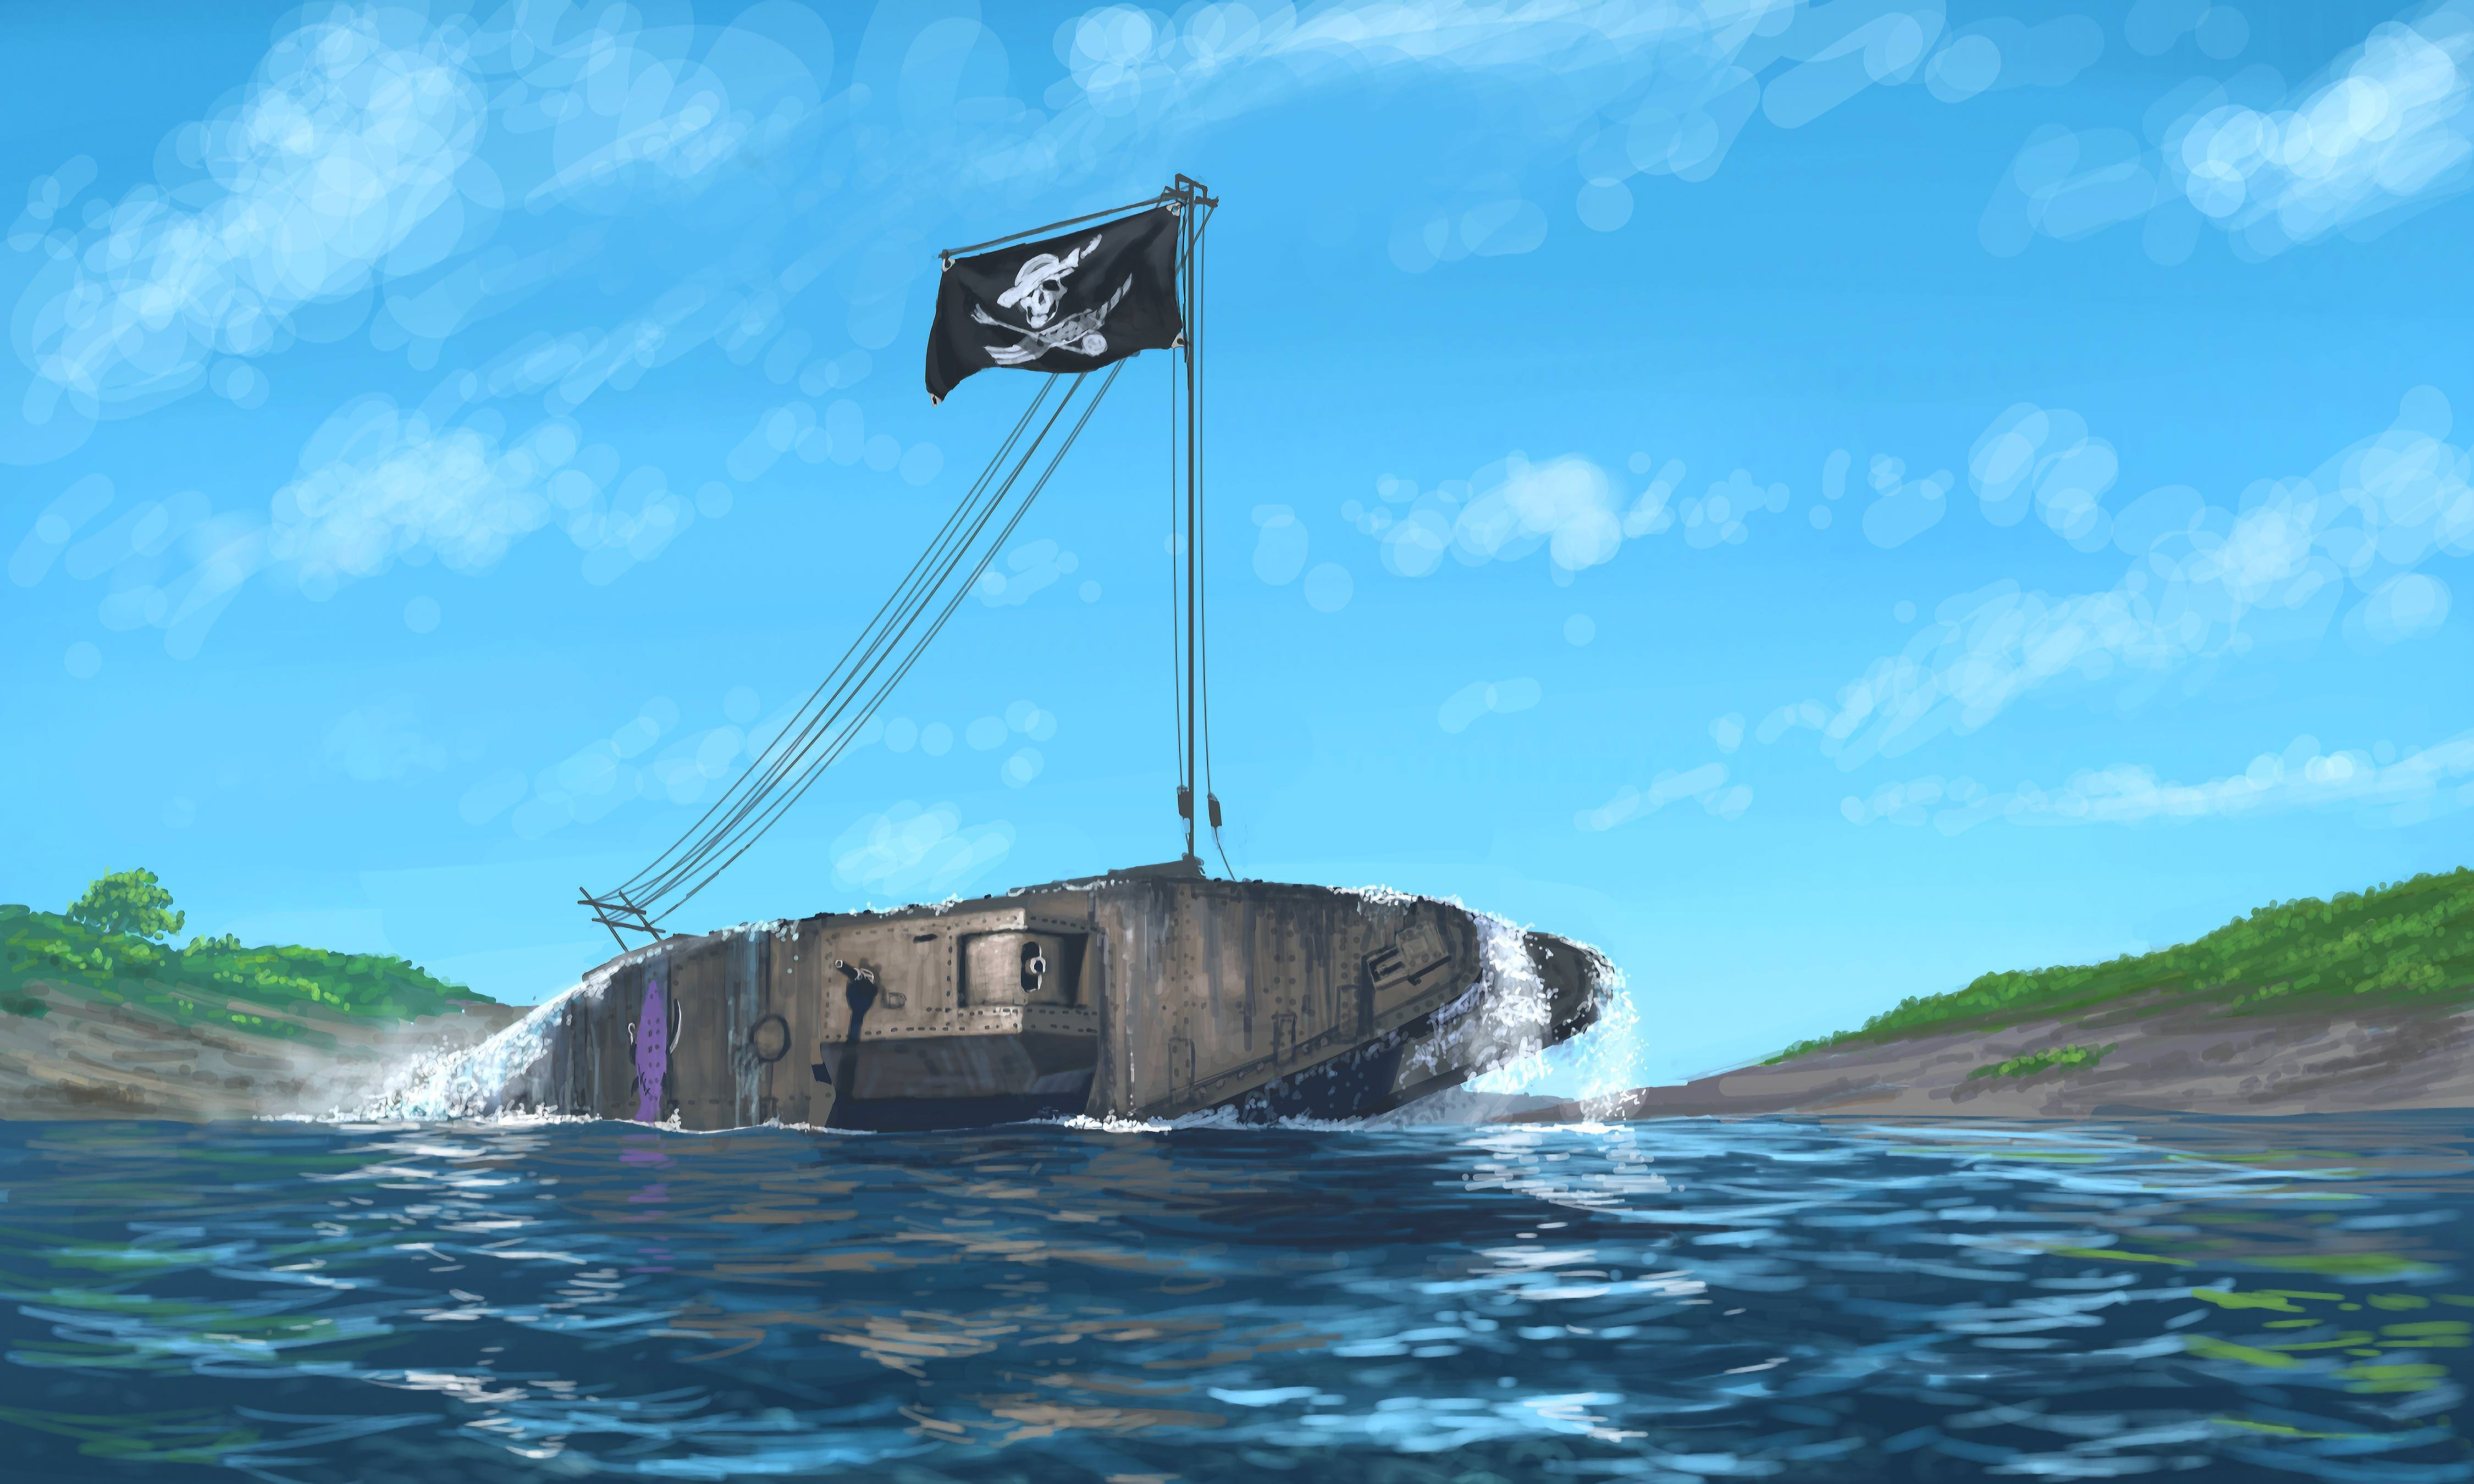 Pirates 4k Wallpapers For Your Desktop Or Mobile Screen Free And